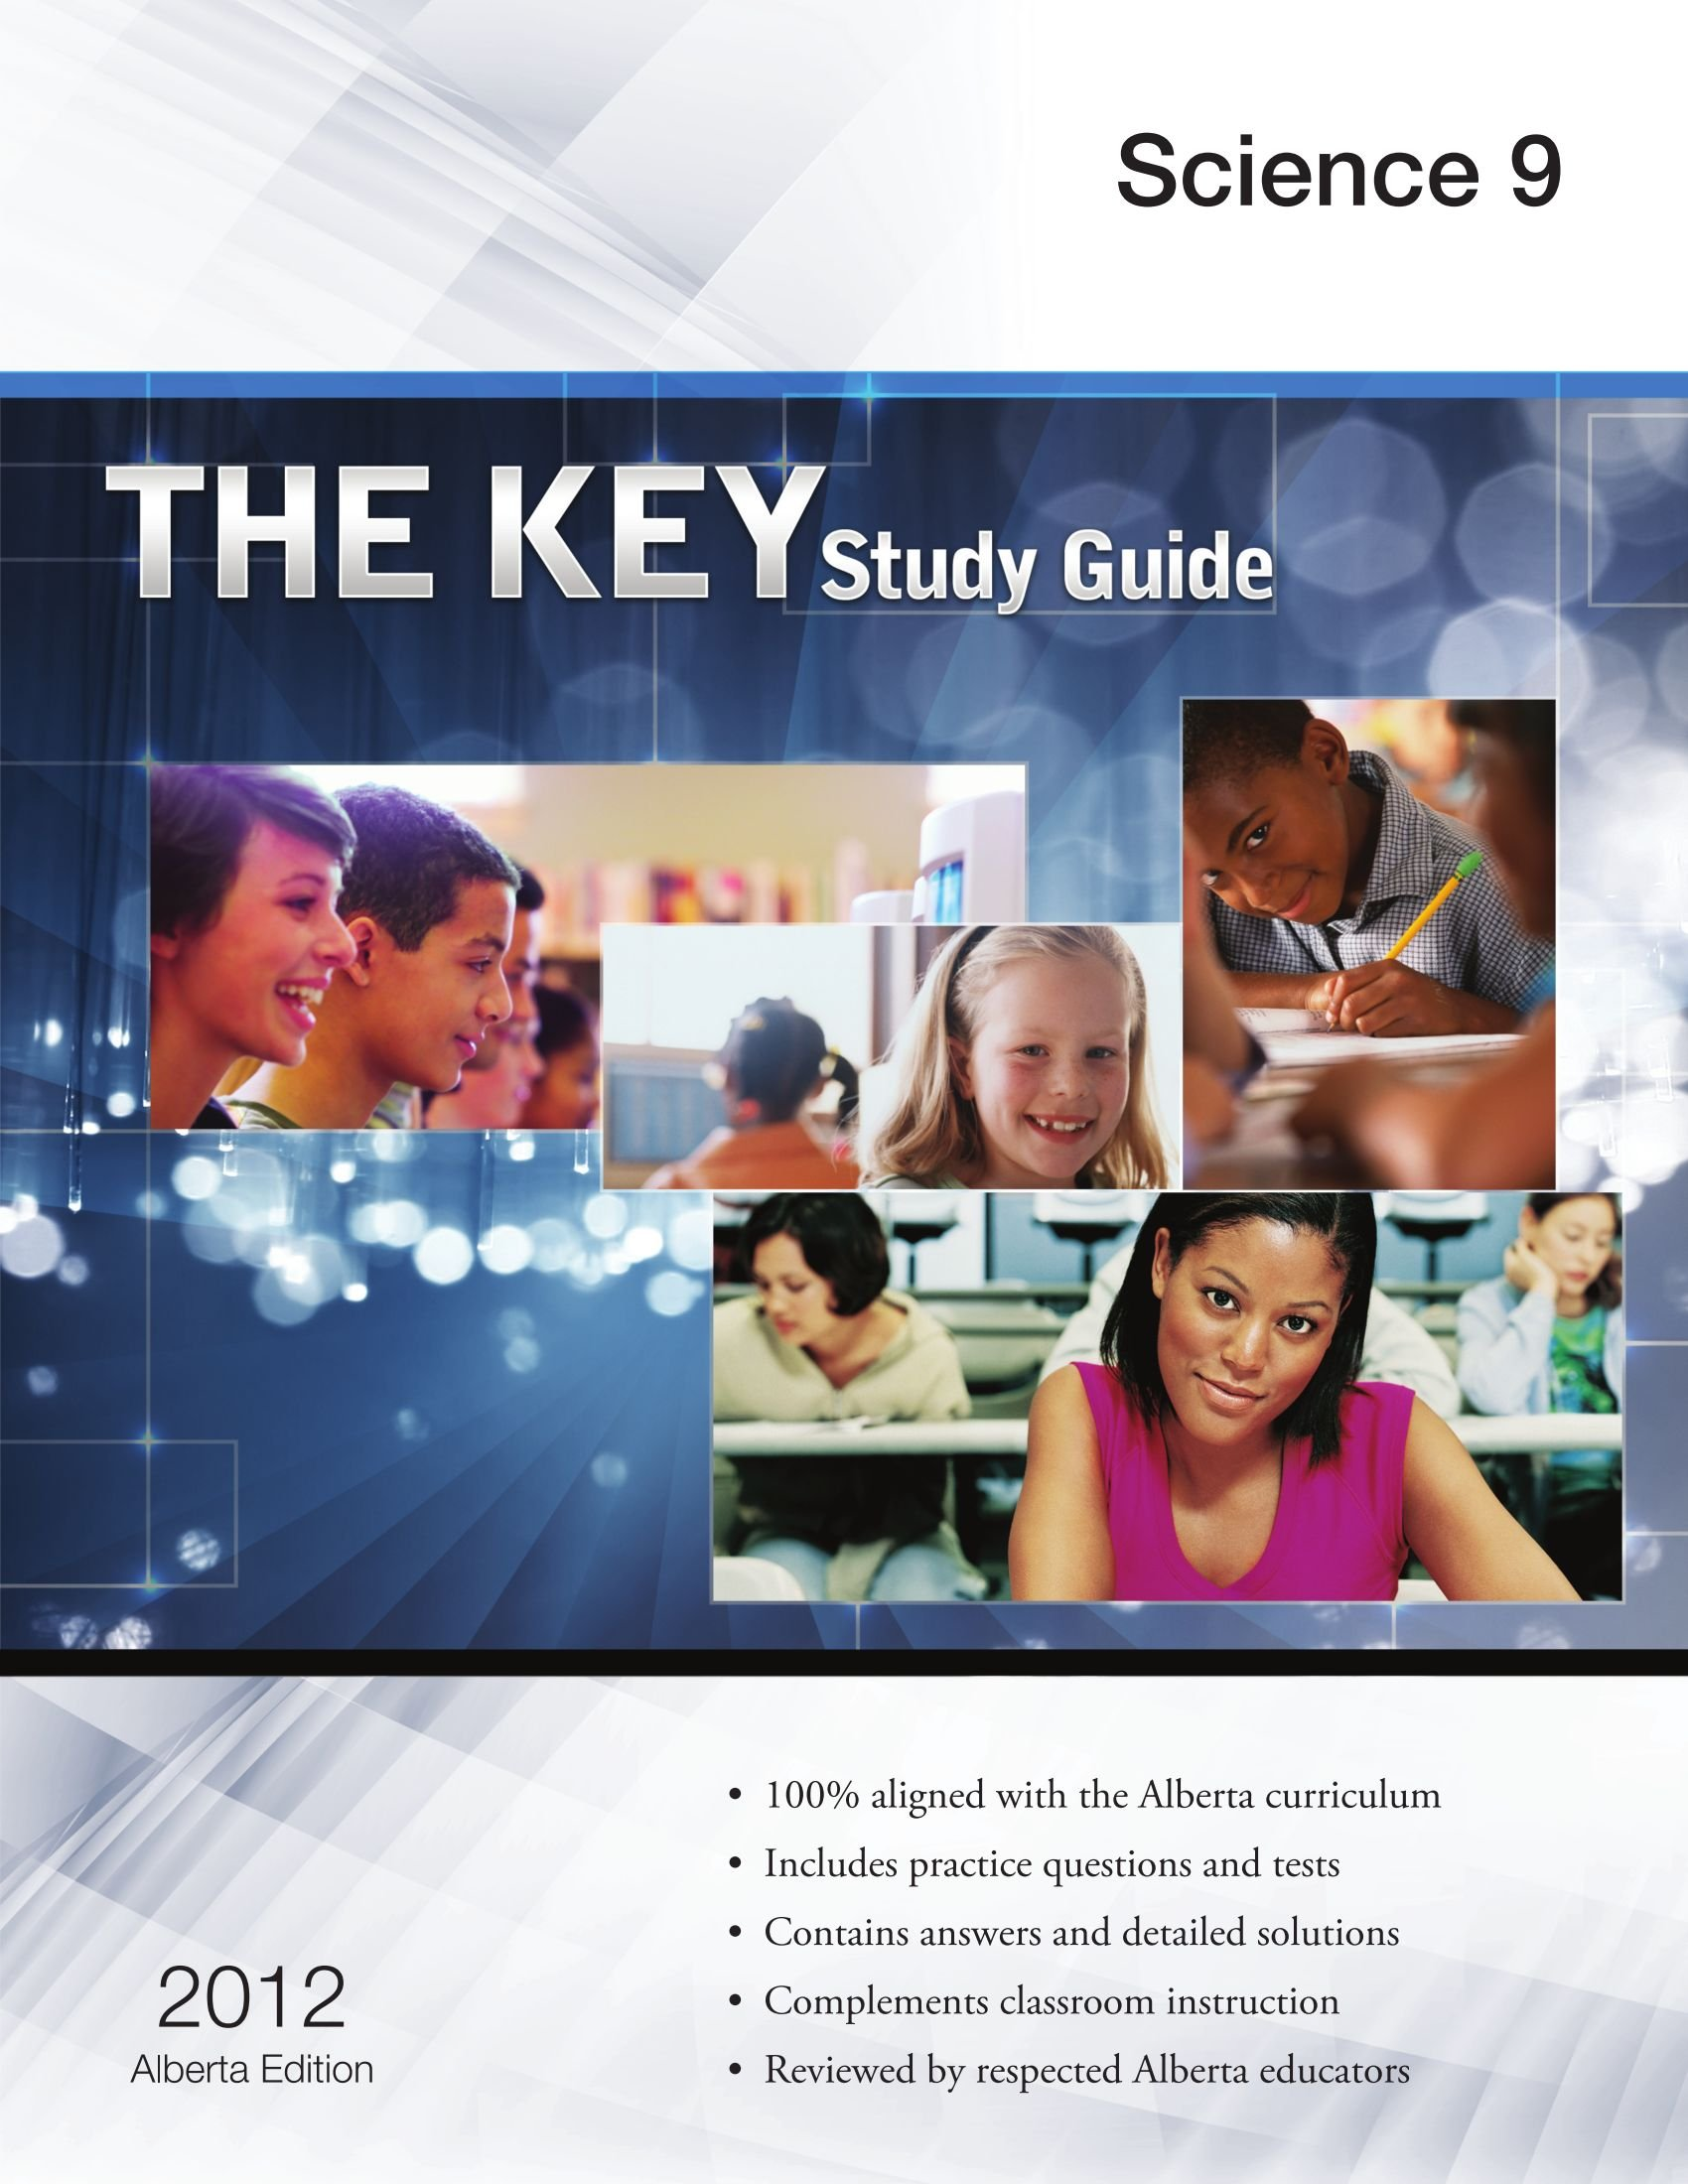 Download The Key Study Guide Science 9 ebook